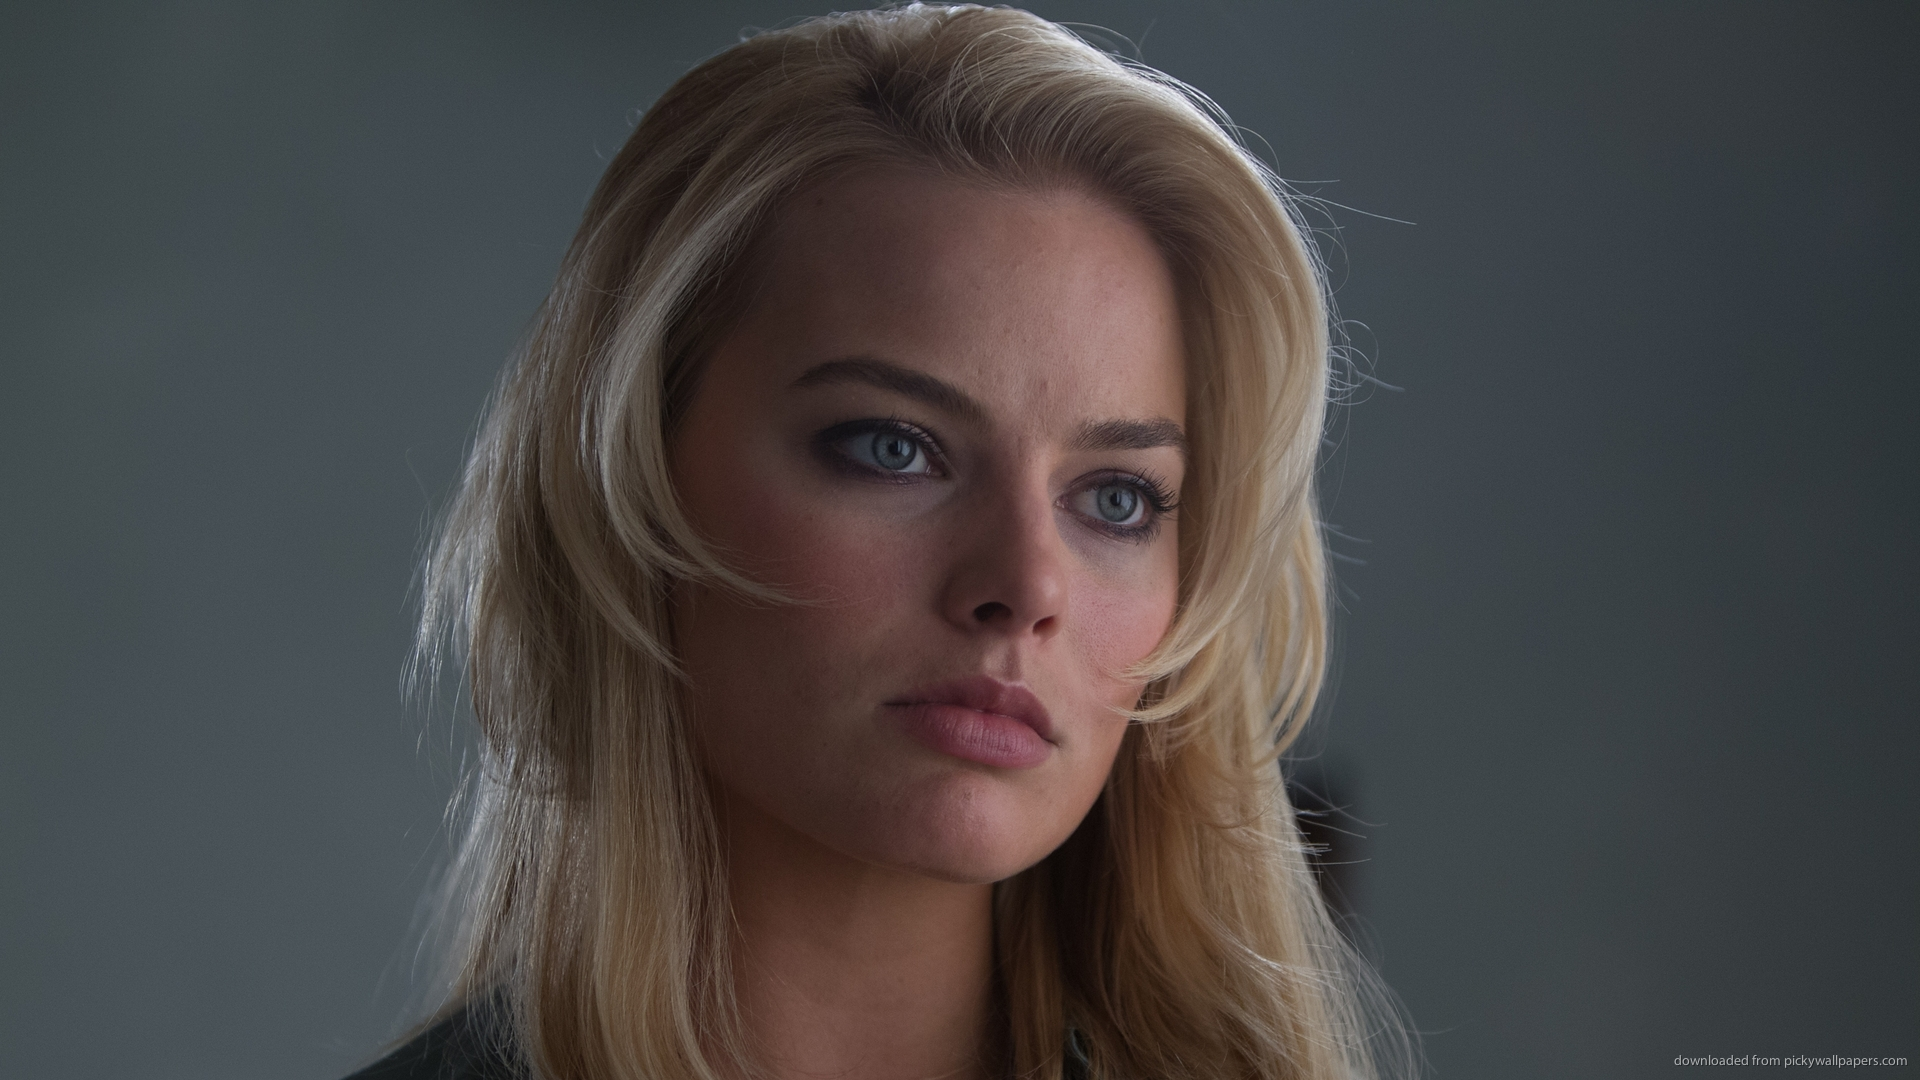 The Wolf Of Wall Street Images The Wolf Of Wall Street Margot Robbie Photoshop Suicide Squad 202097 Hd Wallpaper Backgrounds Download